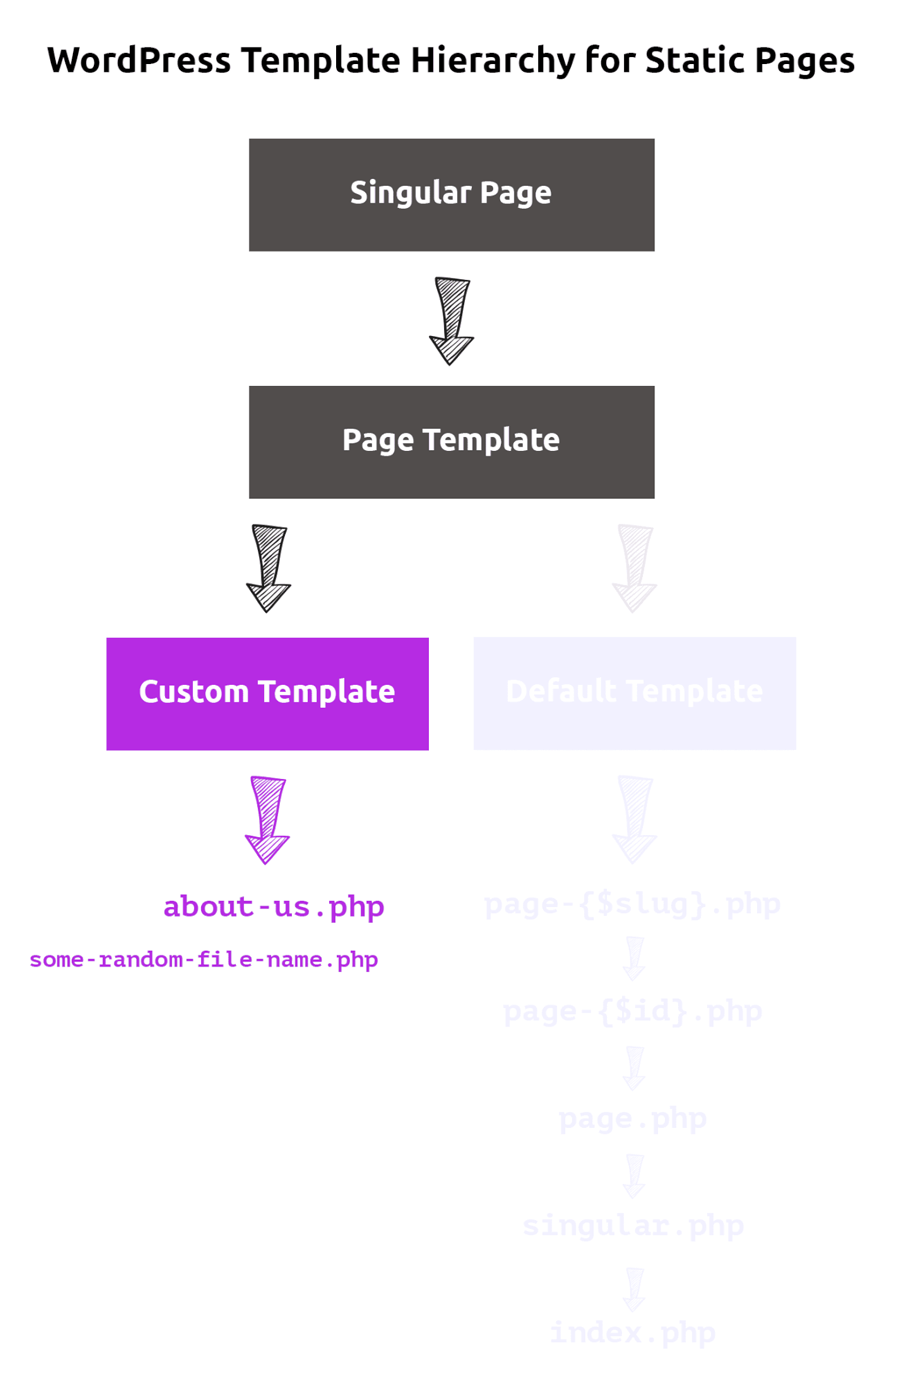 WordPress template hierarchy for custom templates